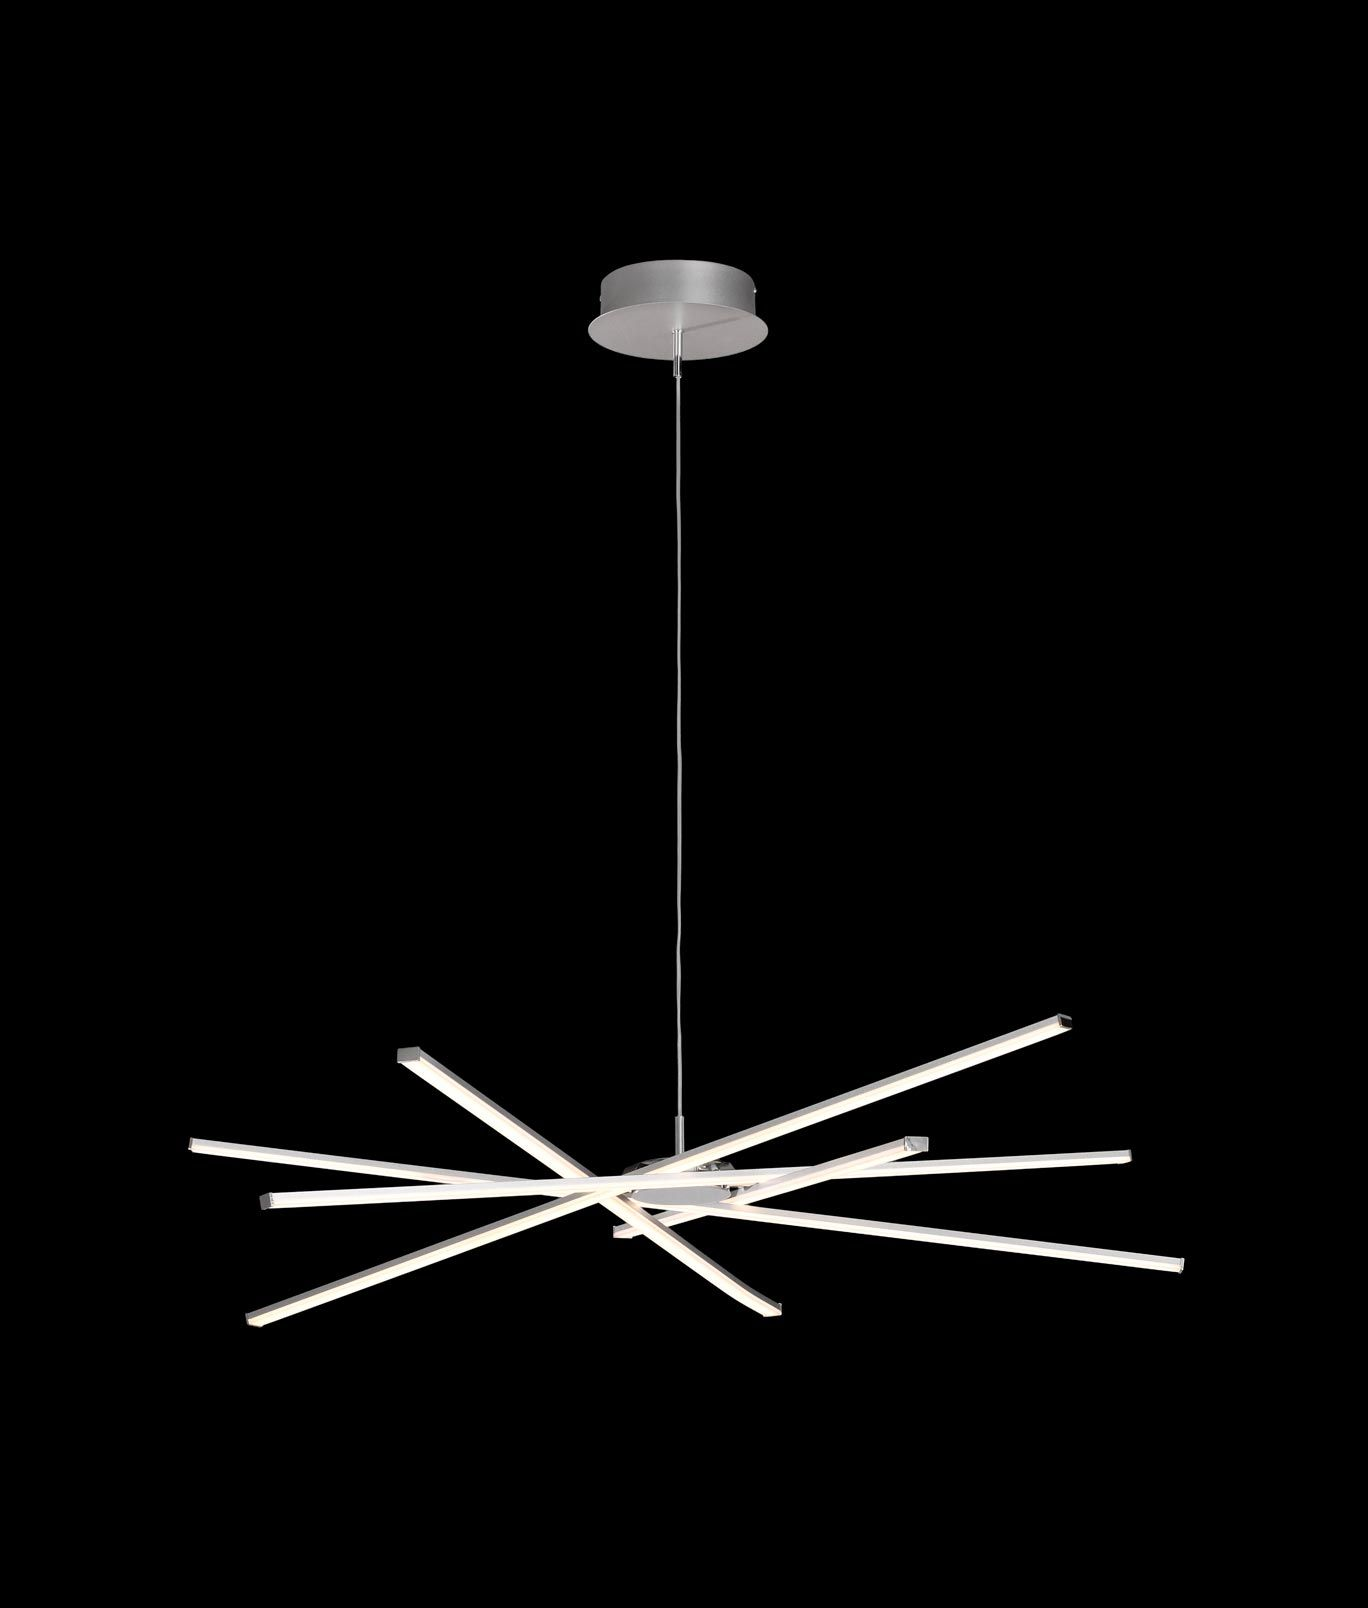 L mpara colgante moderna dimmable star led la casa de la for Lamparas led diseno